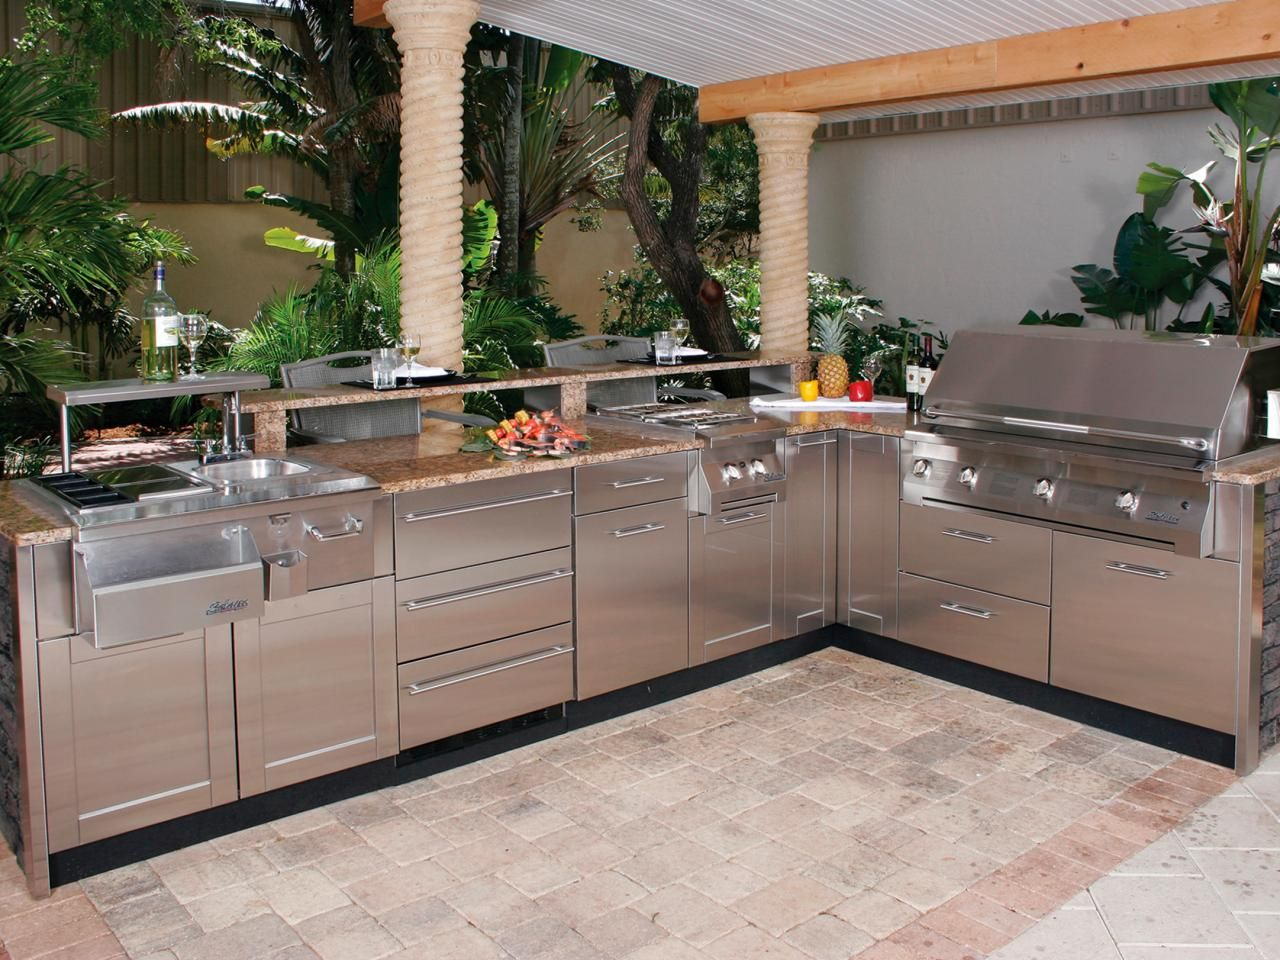 Outdoor stainless steel countertop cost and design ideas